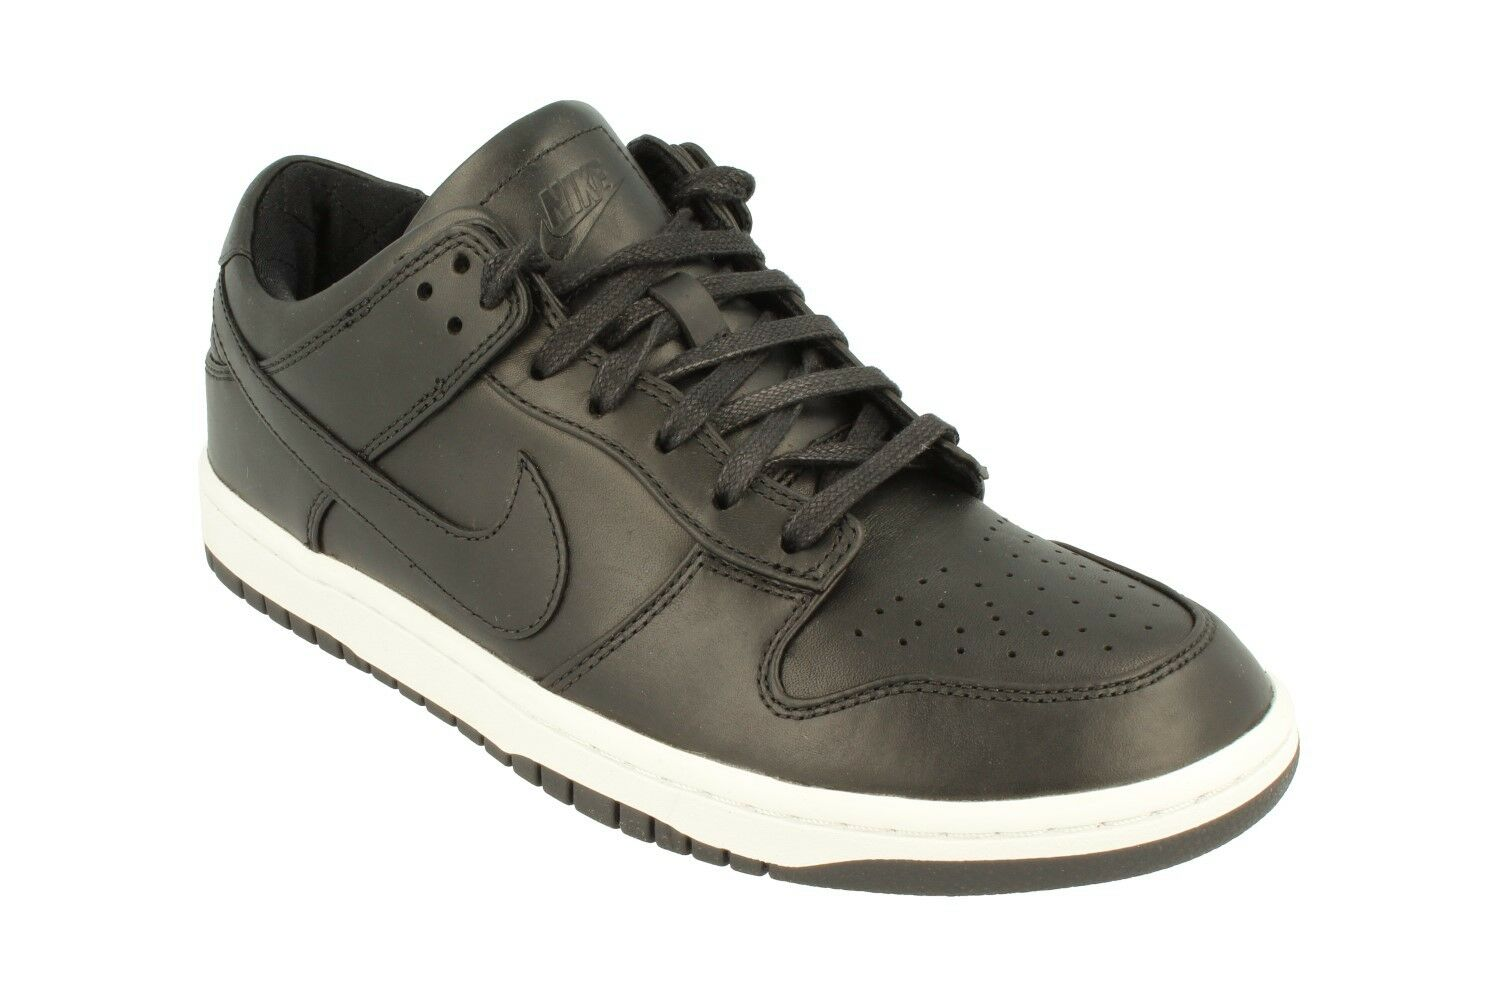 Nikelab Dunk Luxe Bas Baskets Hommes 857587 Baskets 001